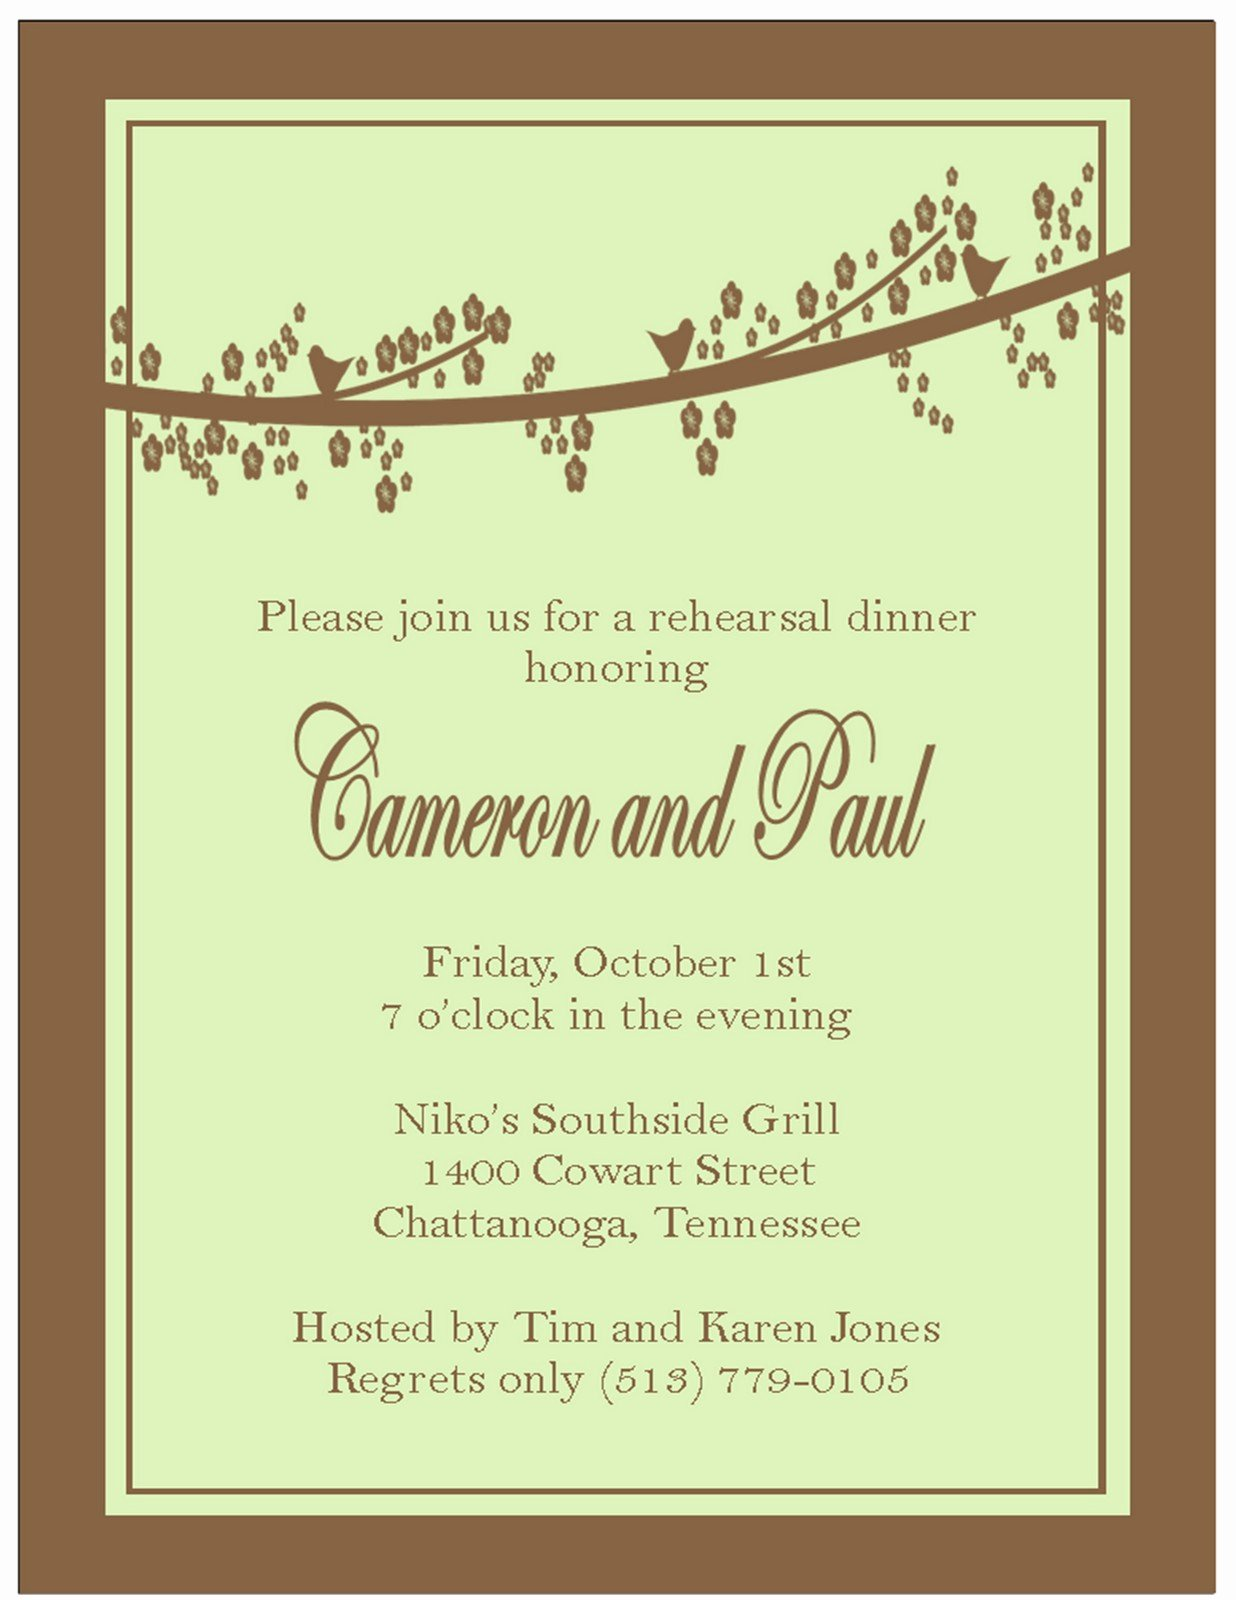 Dinner Invitation Email Template Best Of Invitation for Dinner Party Text Valid Email Dinner